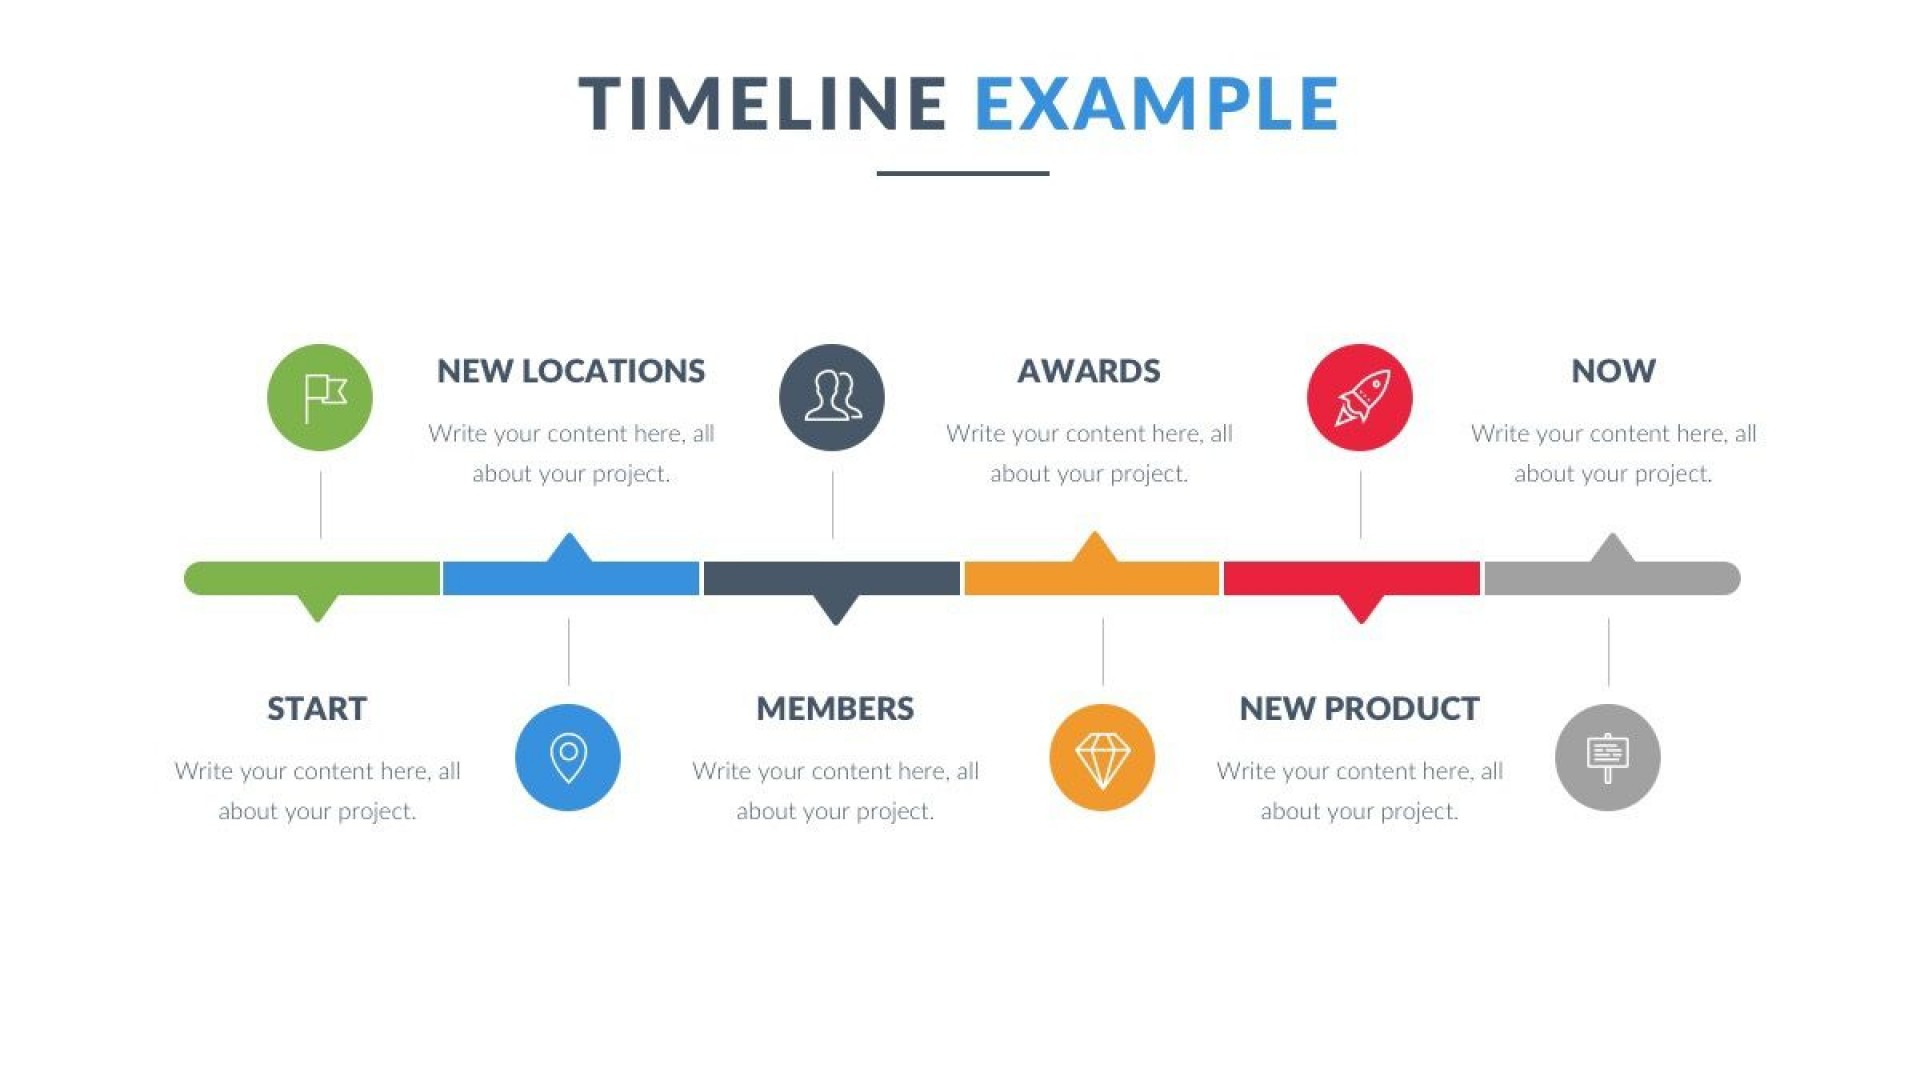 007 Breathtaking Timeline Template For Ppt Free Image  Infographic Vertical Download1920